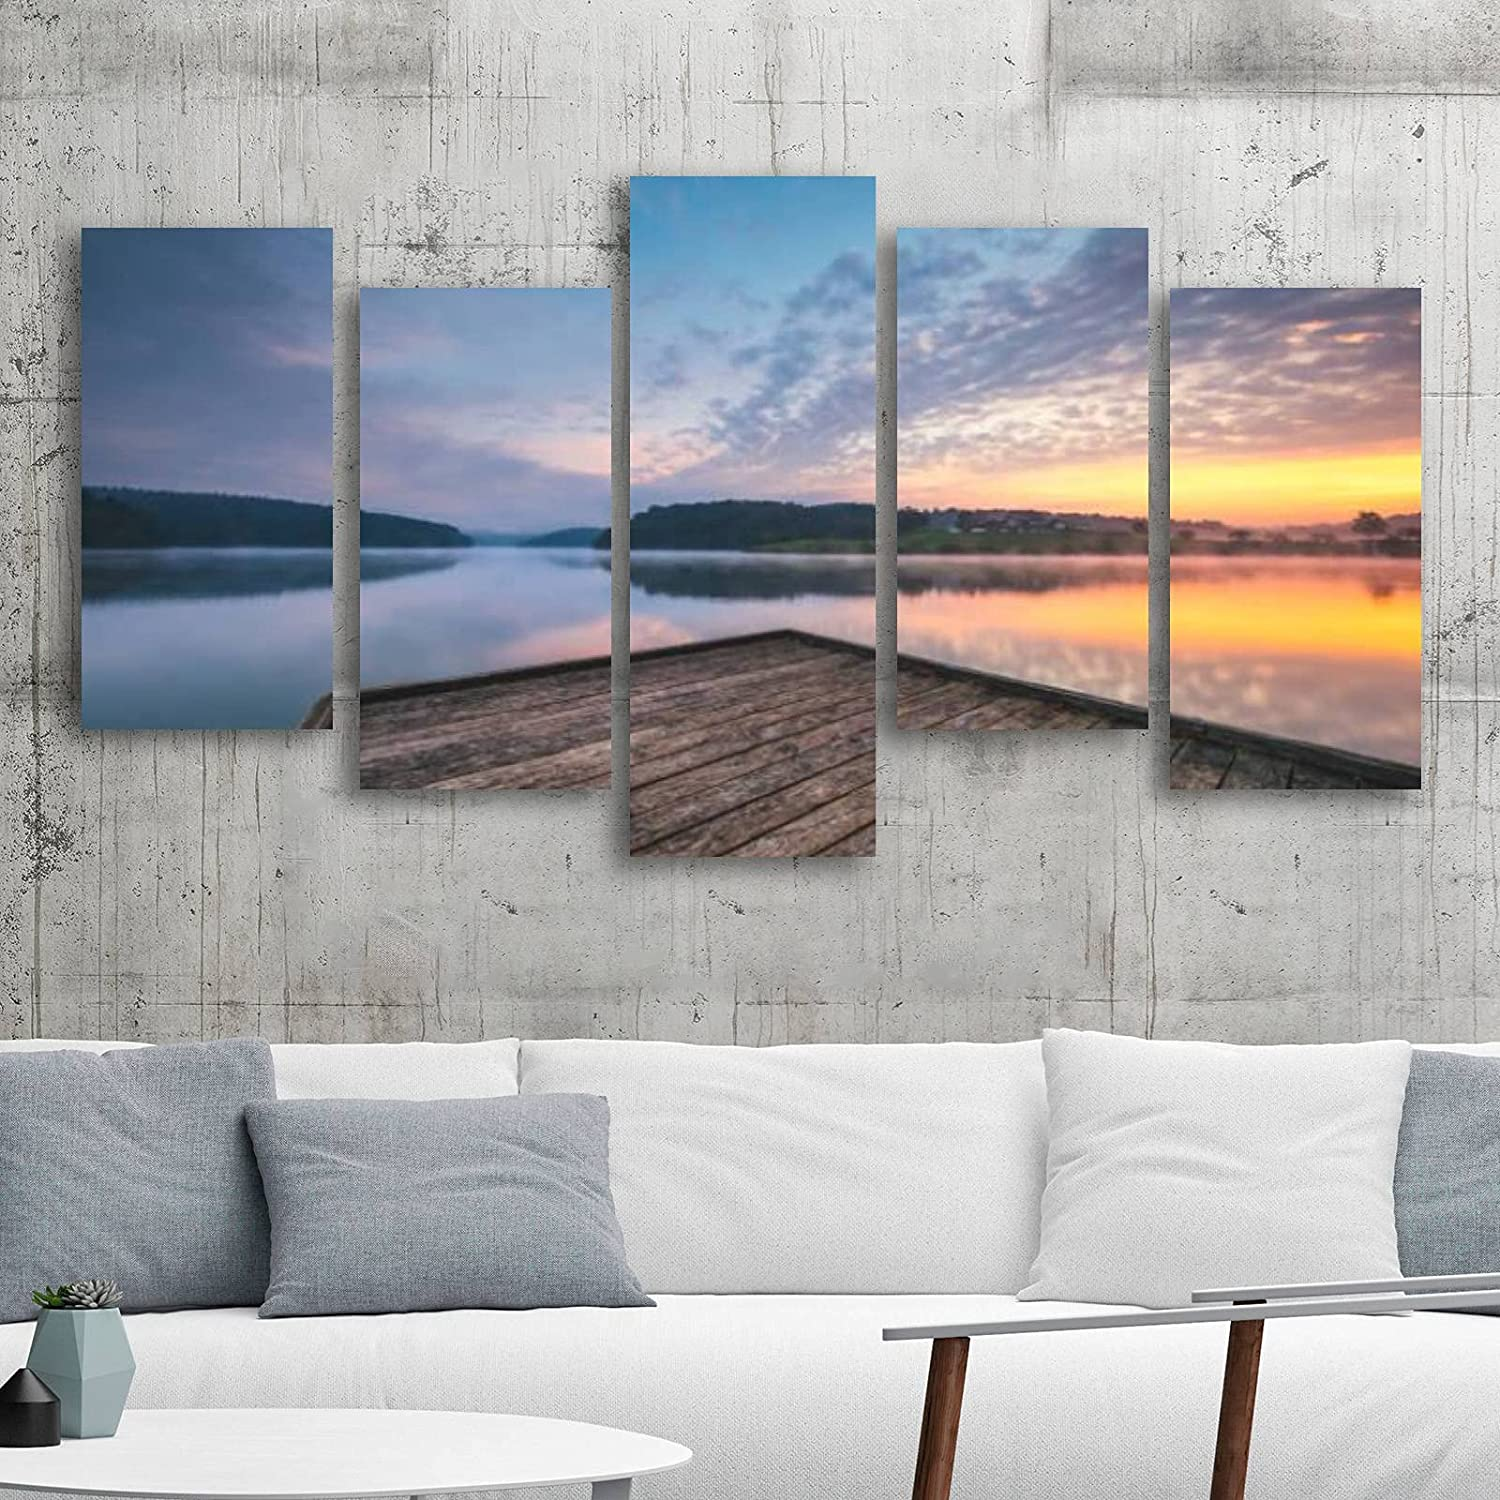 Canvas Wall Max 76% OFF Art Painting Morning Gi Tranquility Direct store Prints on